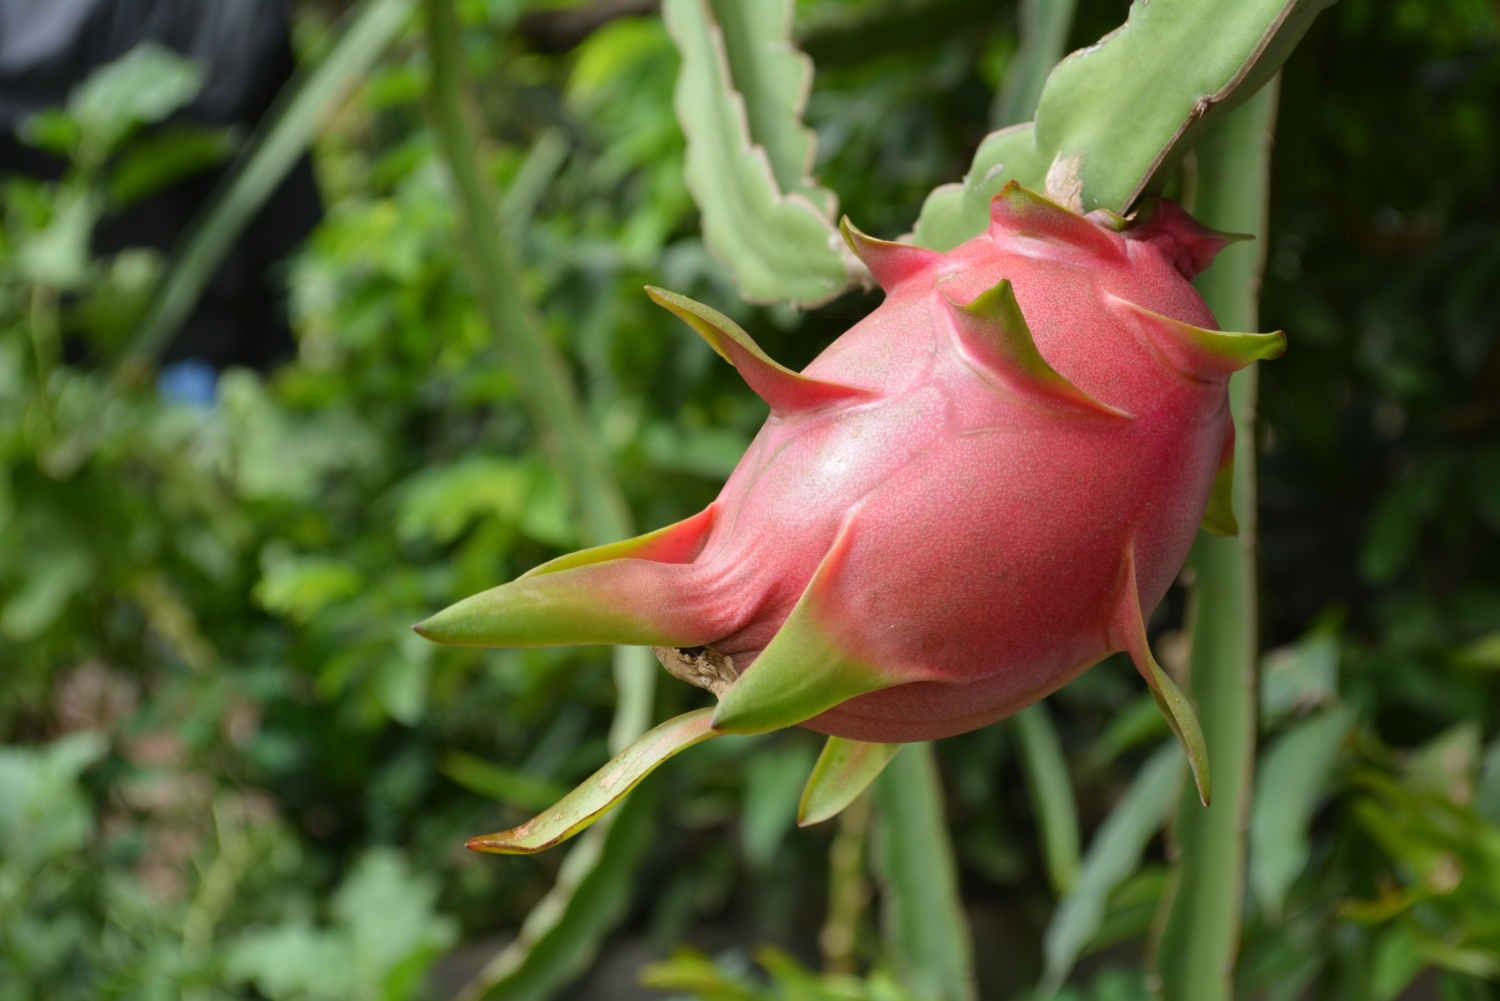 Dragonfruits are predominantly pink/red with a spiny, but soft exterior